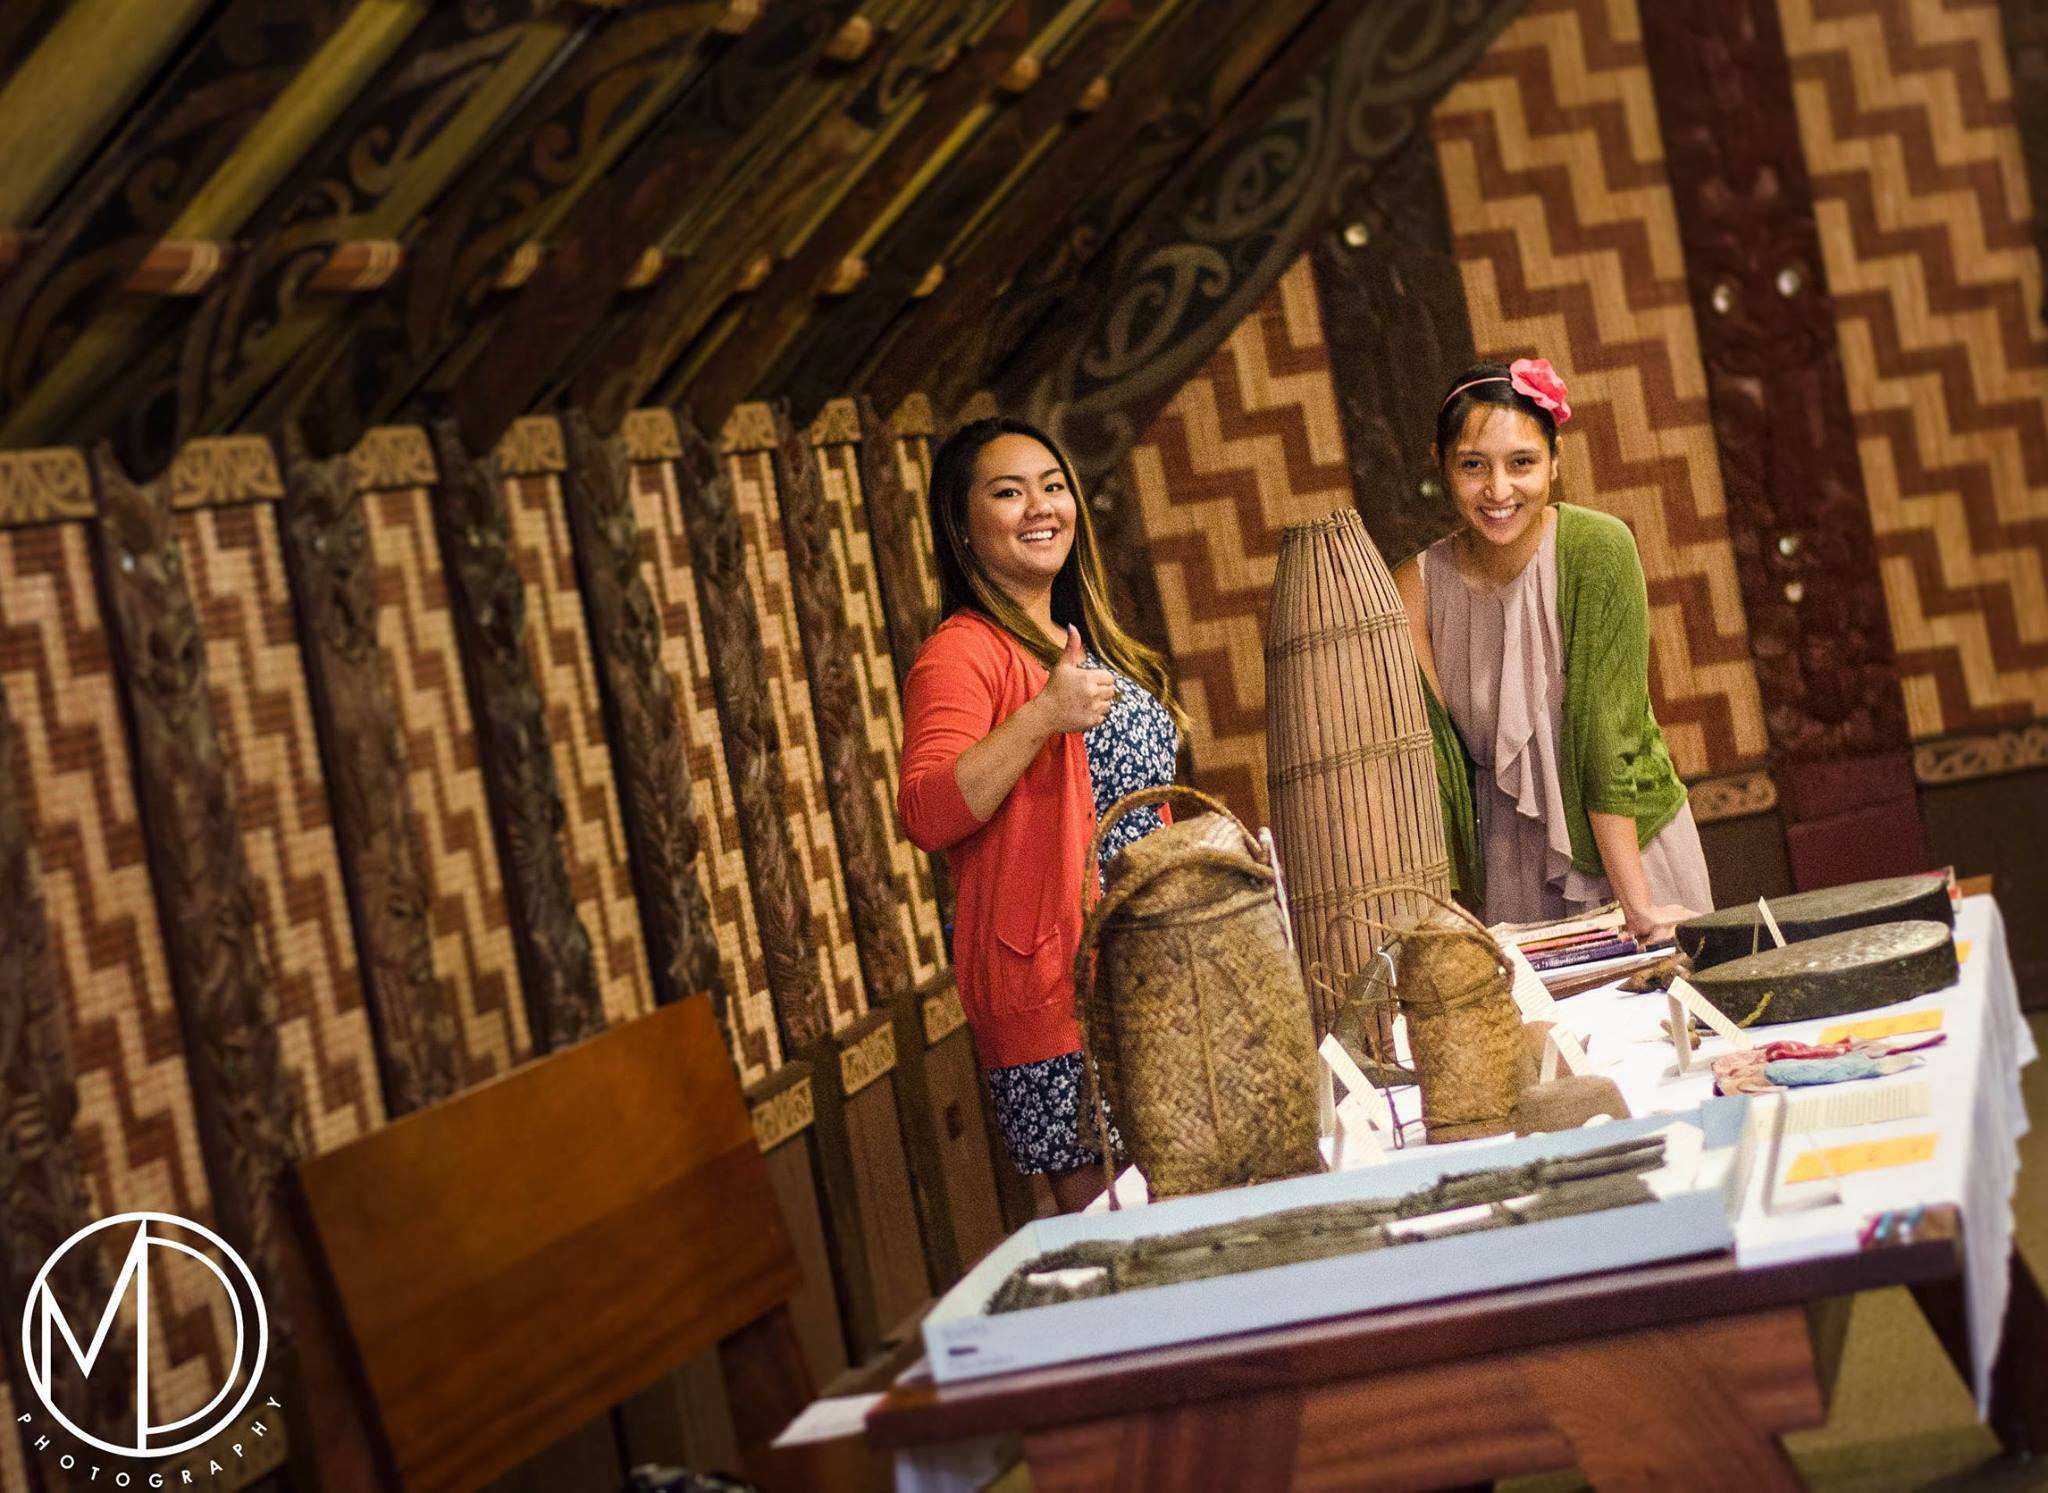 Volunteers posing next to tables of artifacts on display inside the Maori House.